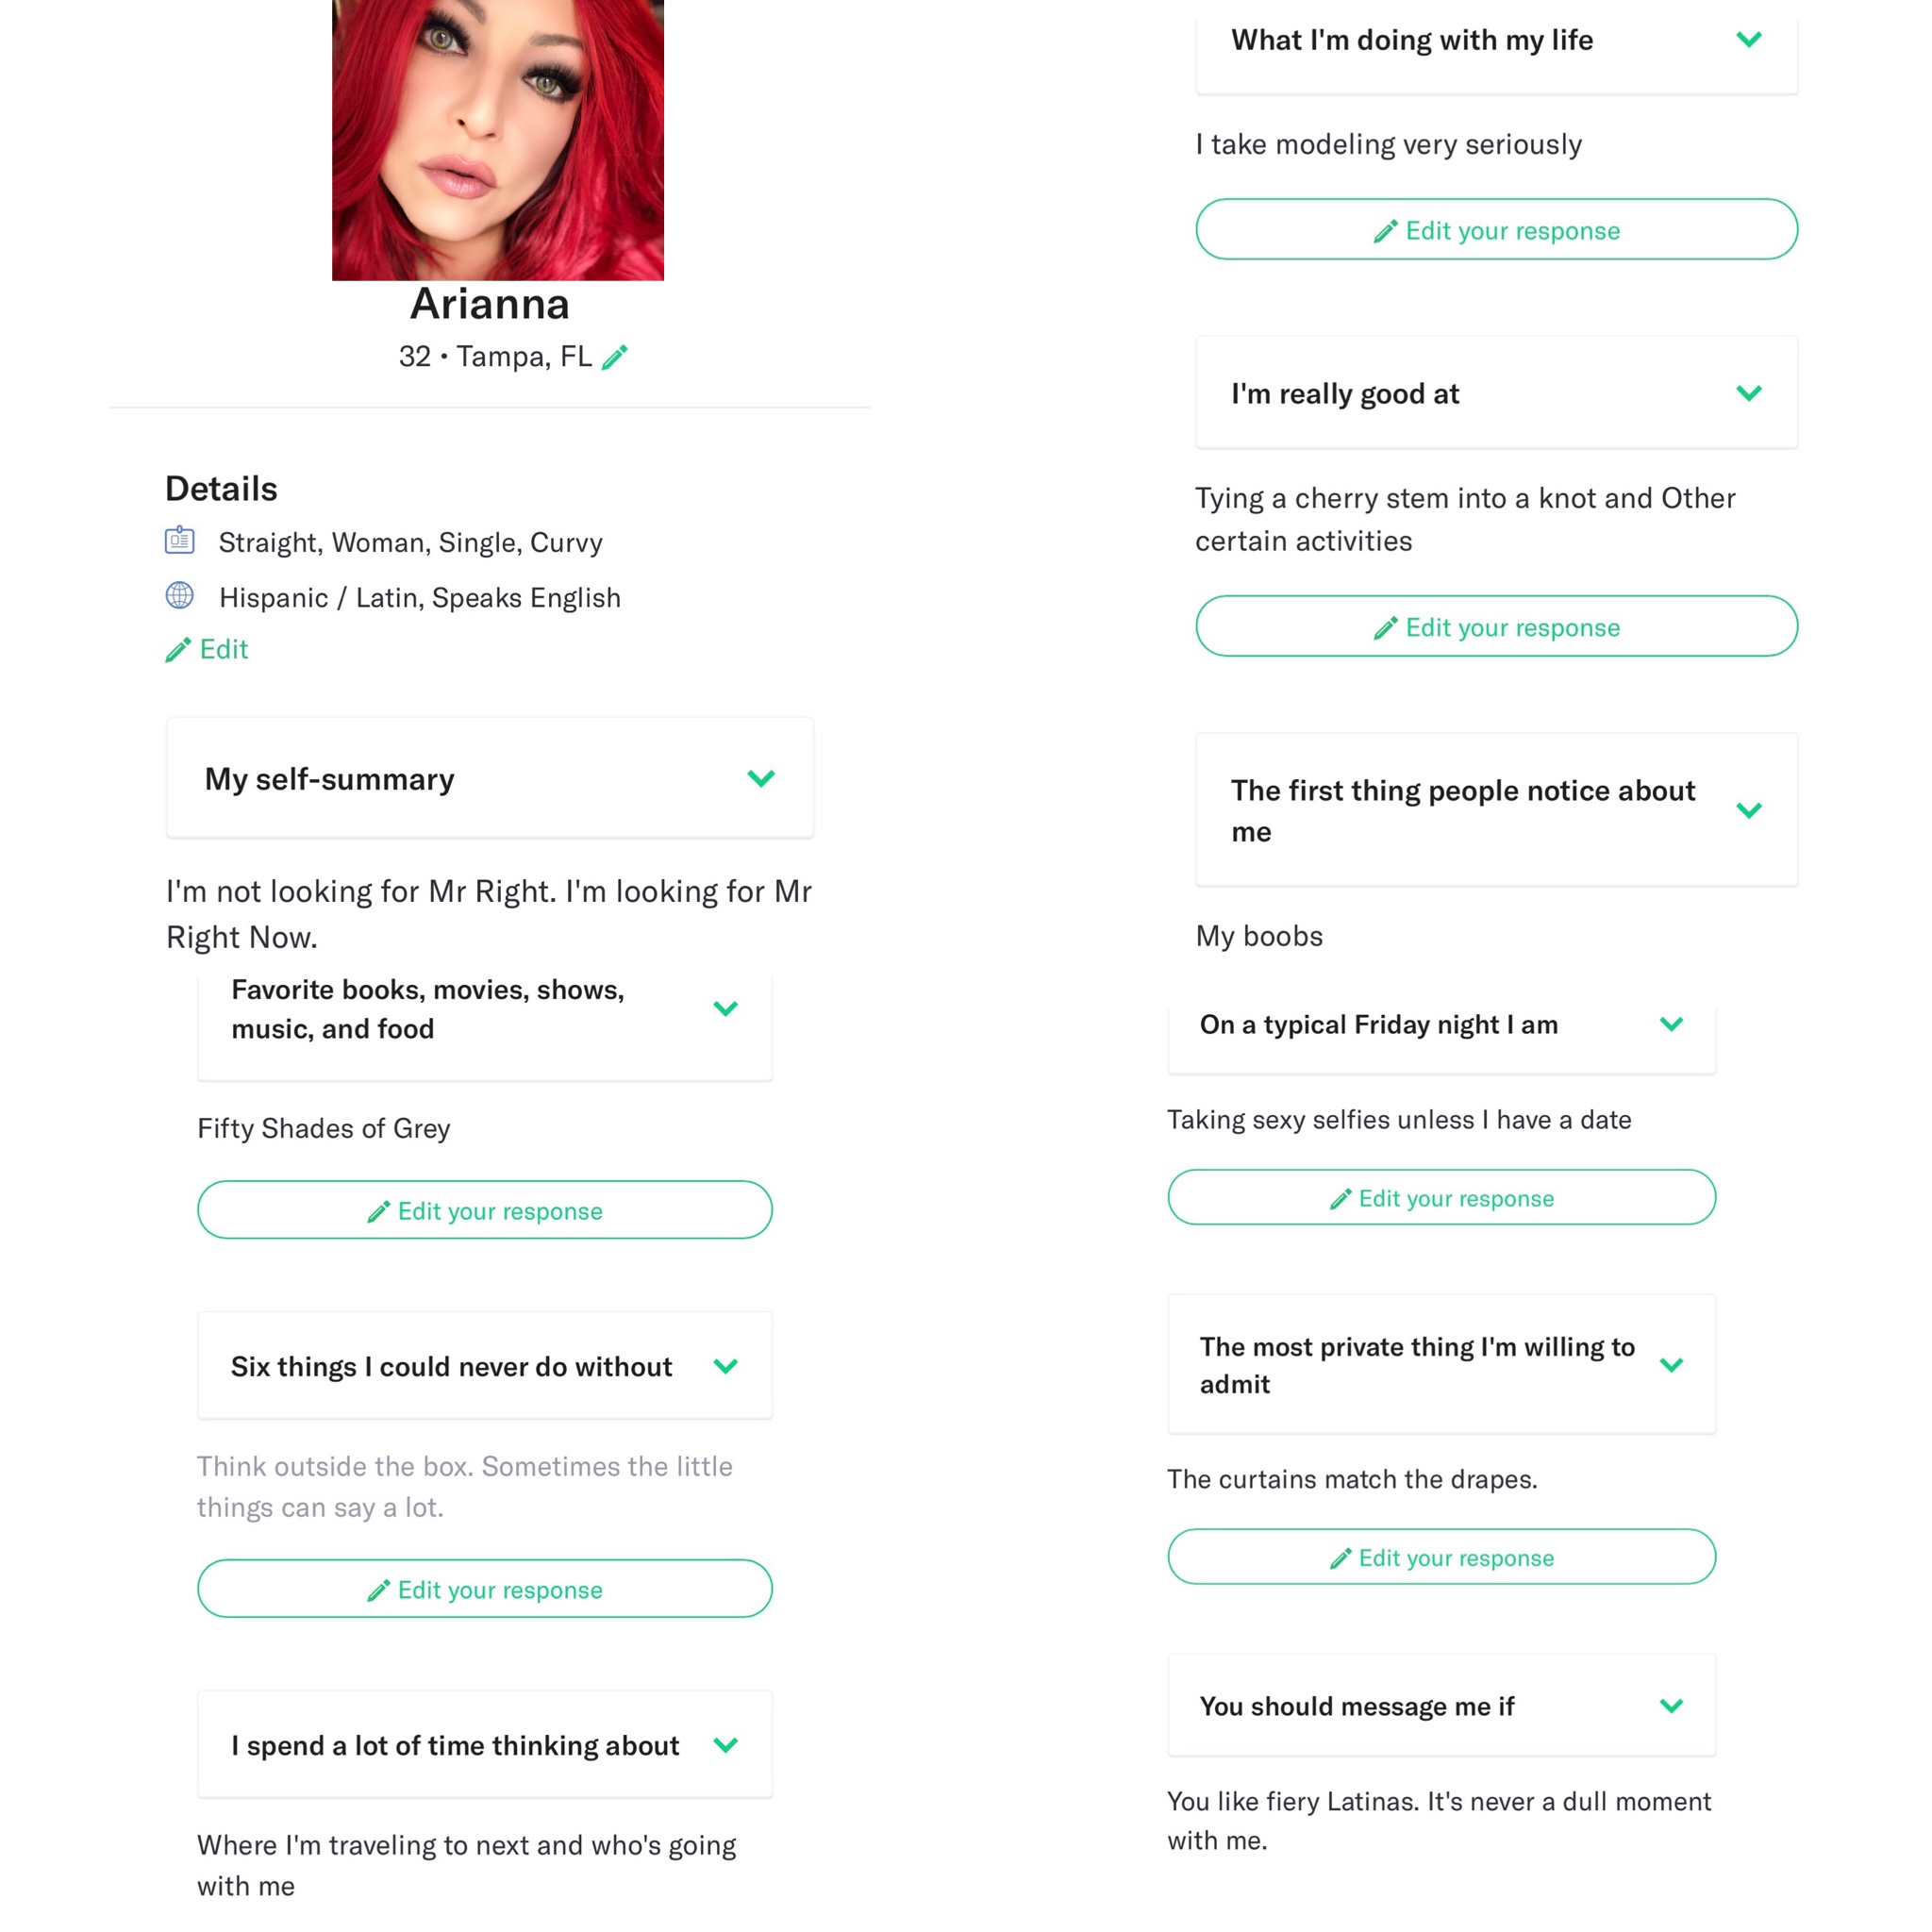 Arianna dating profile